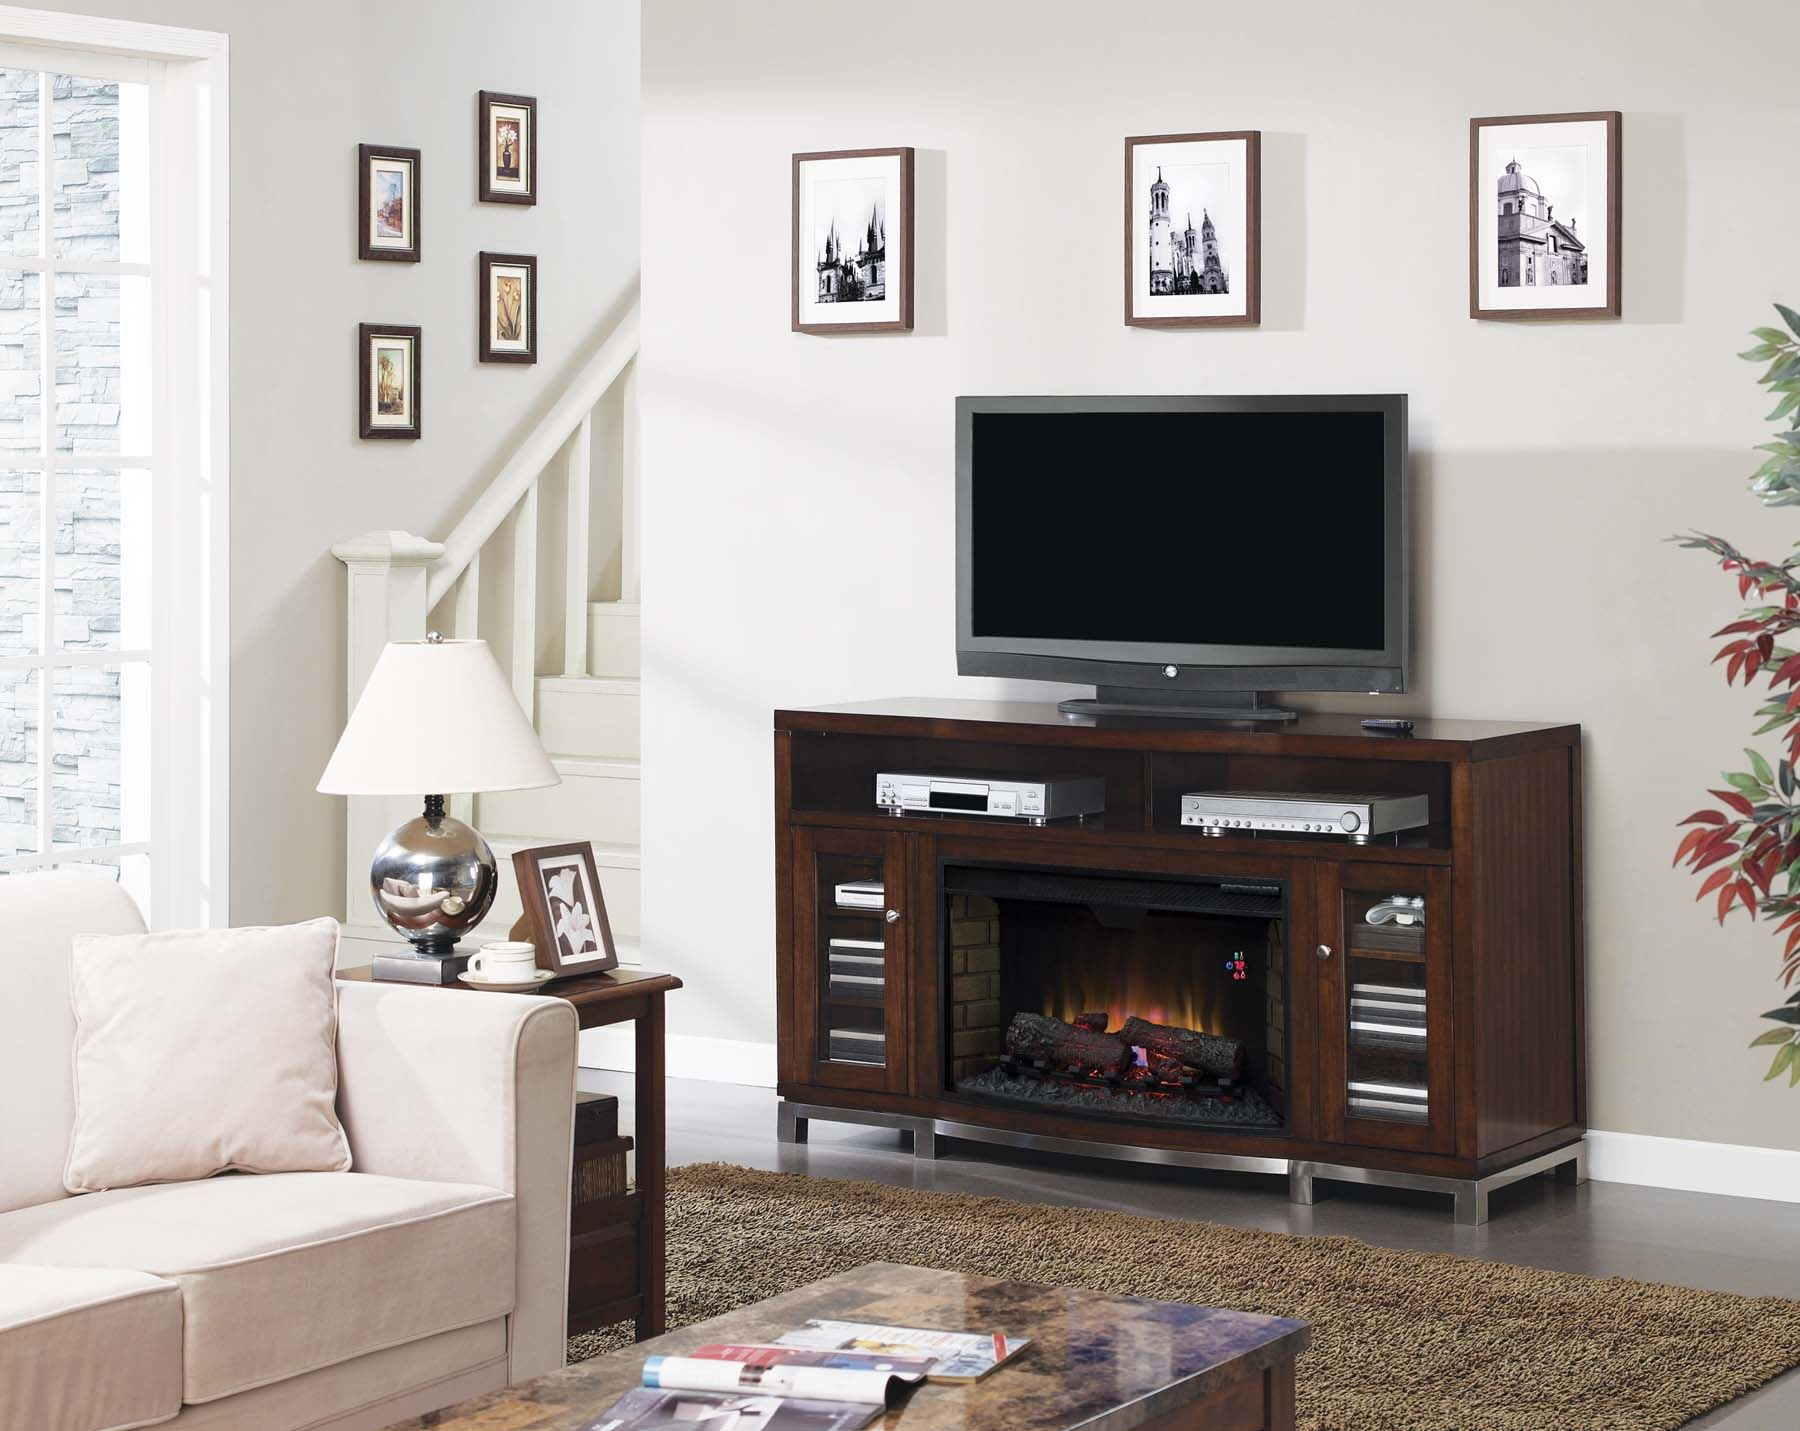 Fireplace amp tv stand in premium cherry finish with 23ef025gra electric - The Wesleyan Is A Contemporary Multi Function Media Cabinet With A Metal Base That